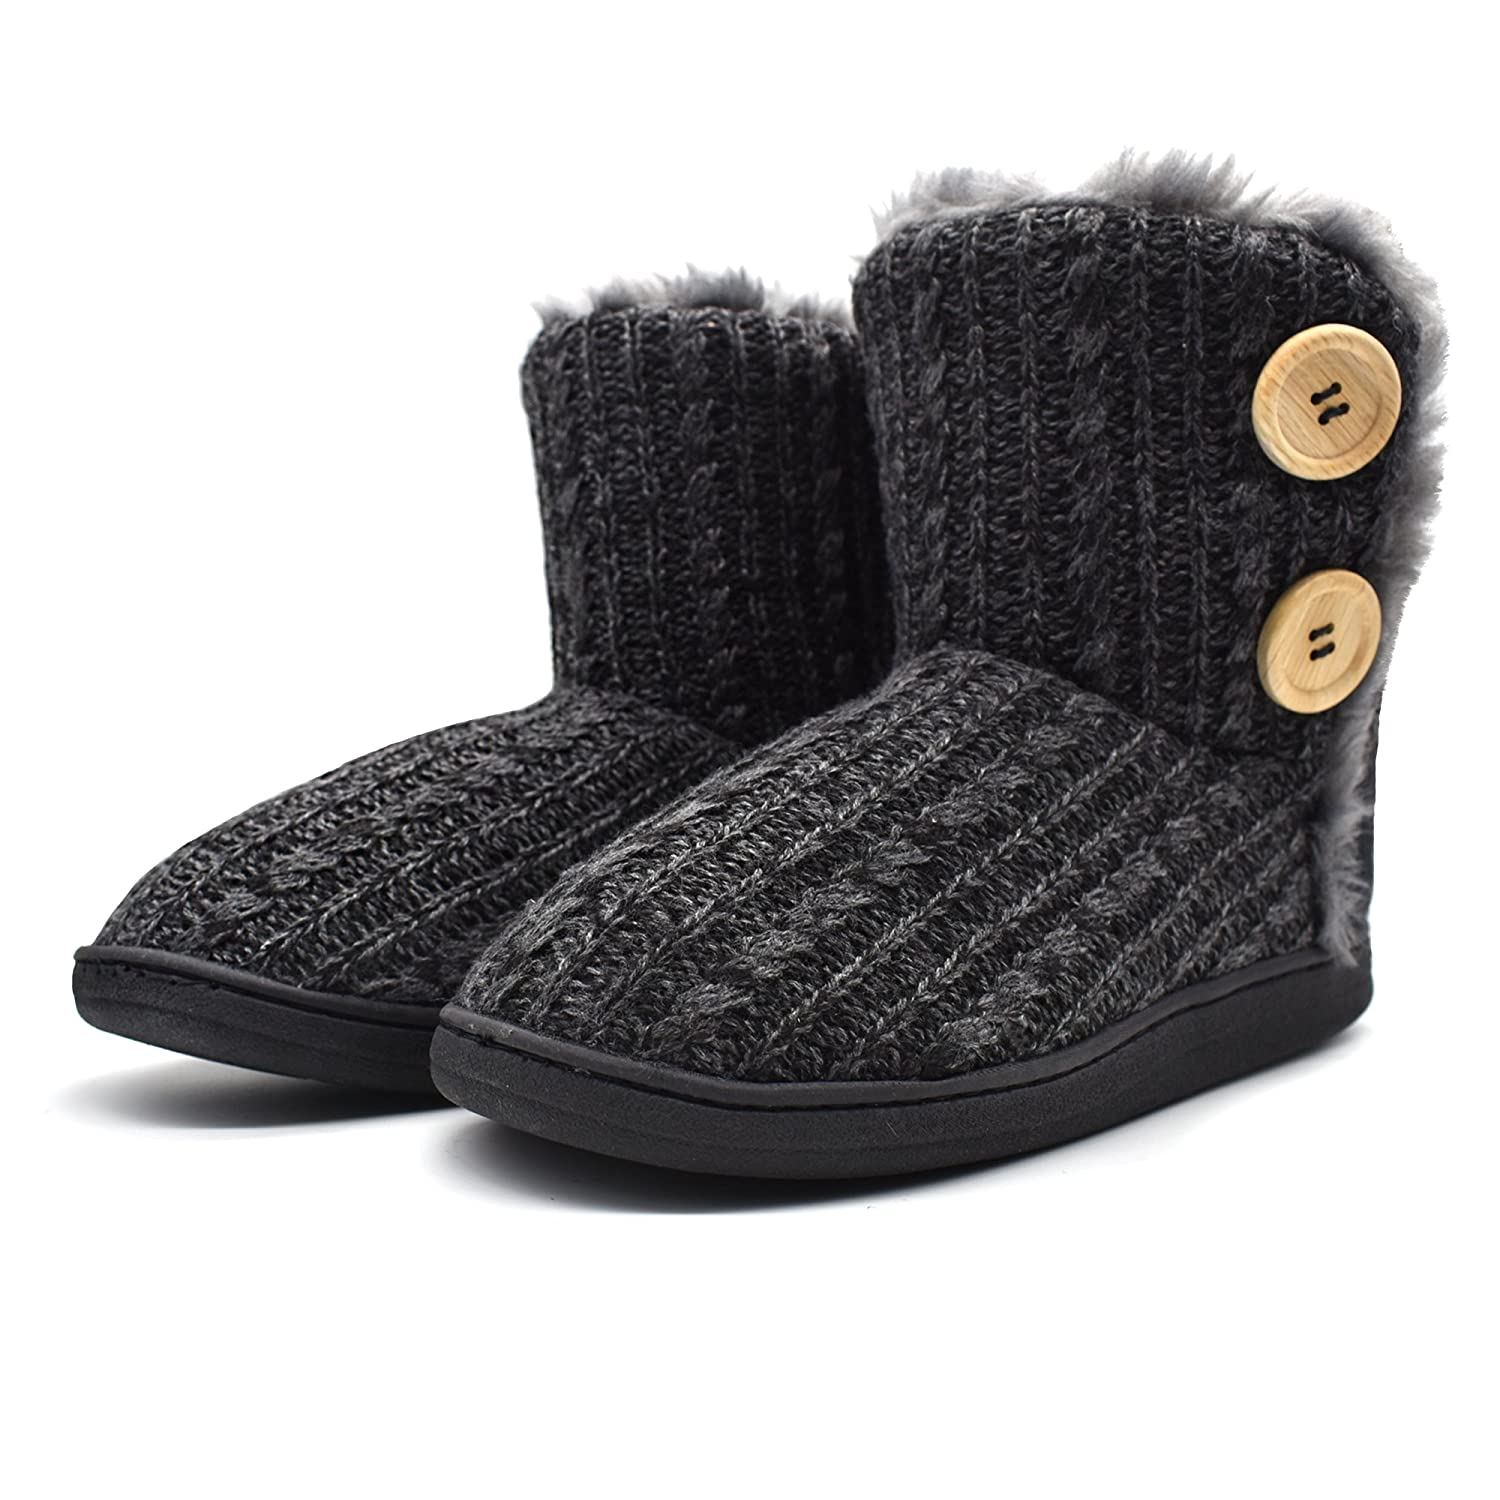 fe25157bf3b8c ONCAI Fluffy Faux Fur Slipper Boots Women Soft Cozy Memory Foam Midcalf  Booties Indoor House Pull on Shoes